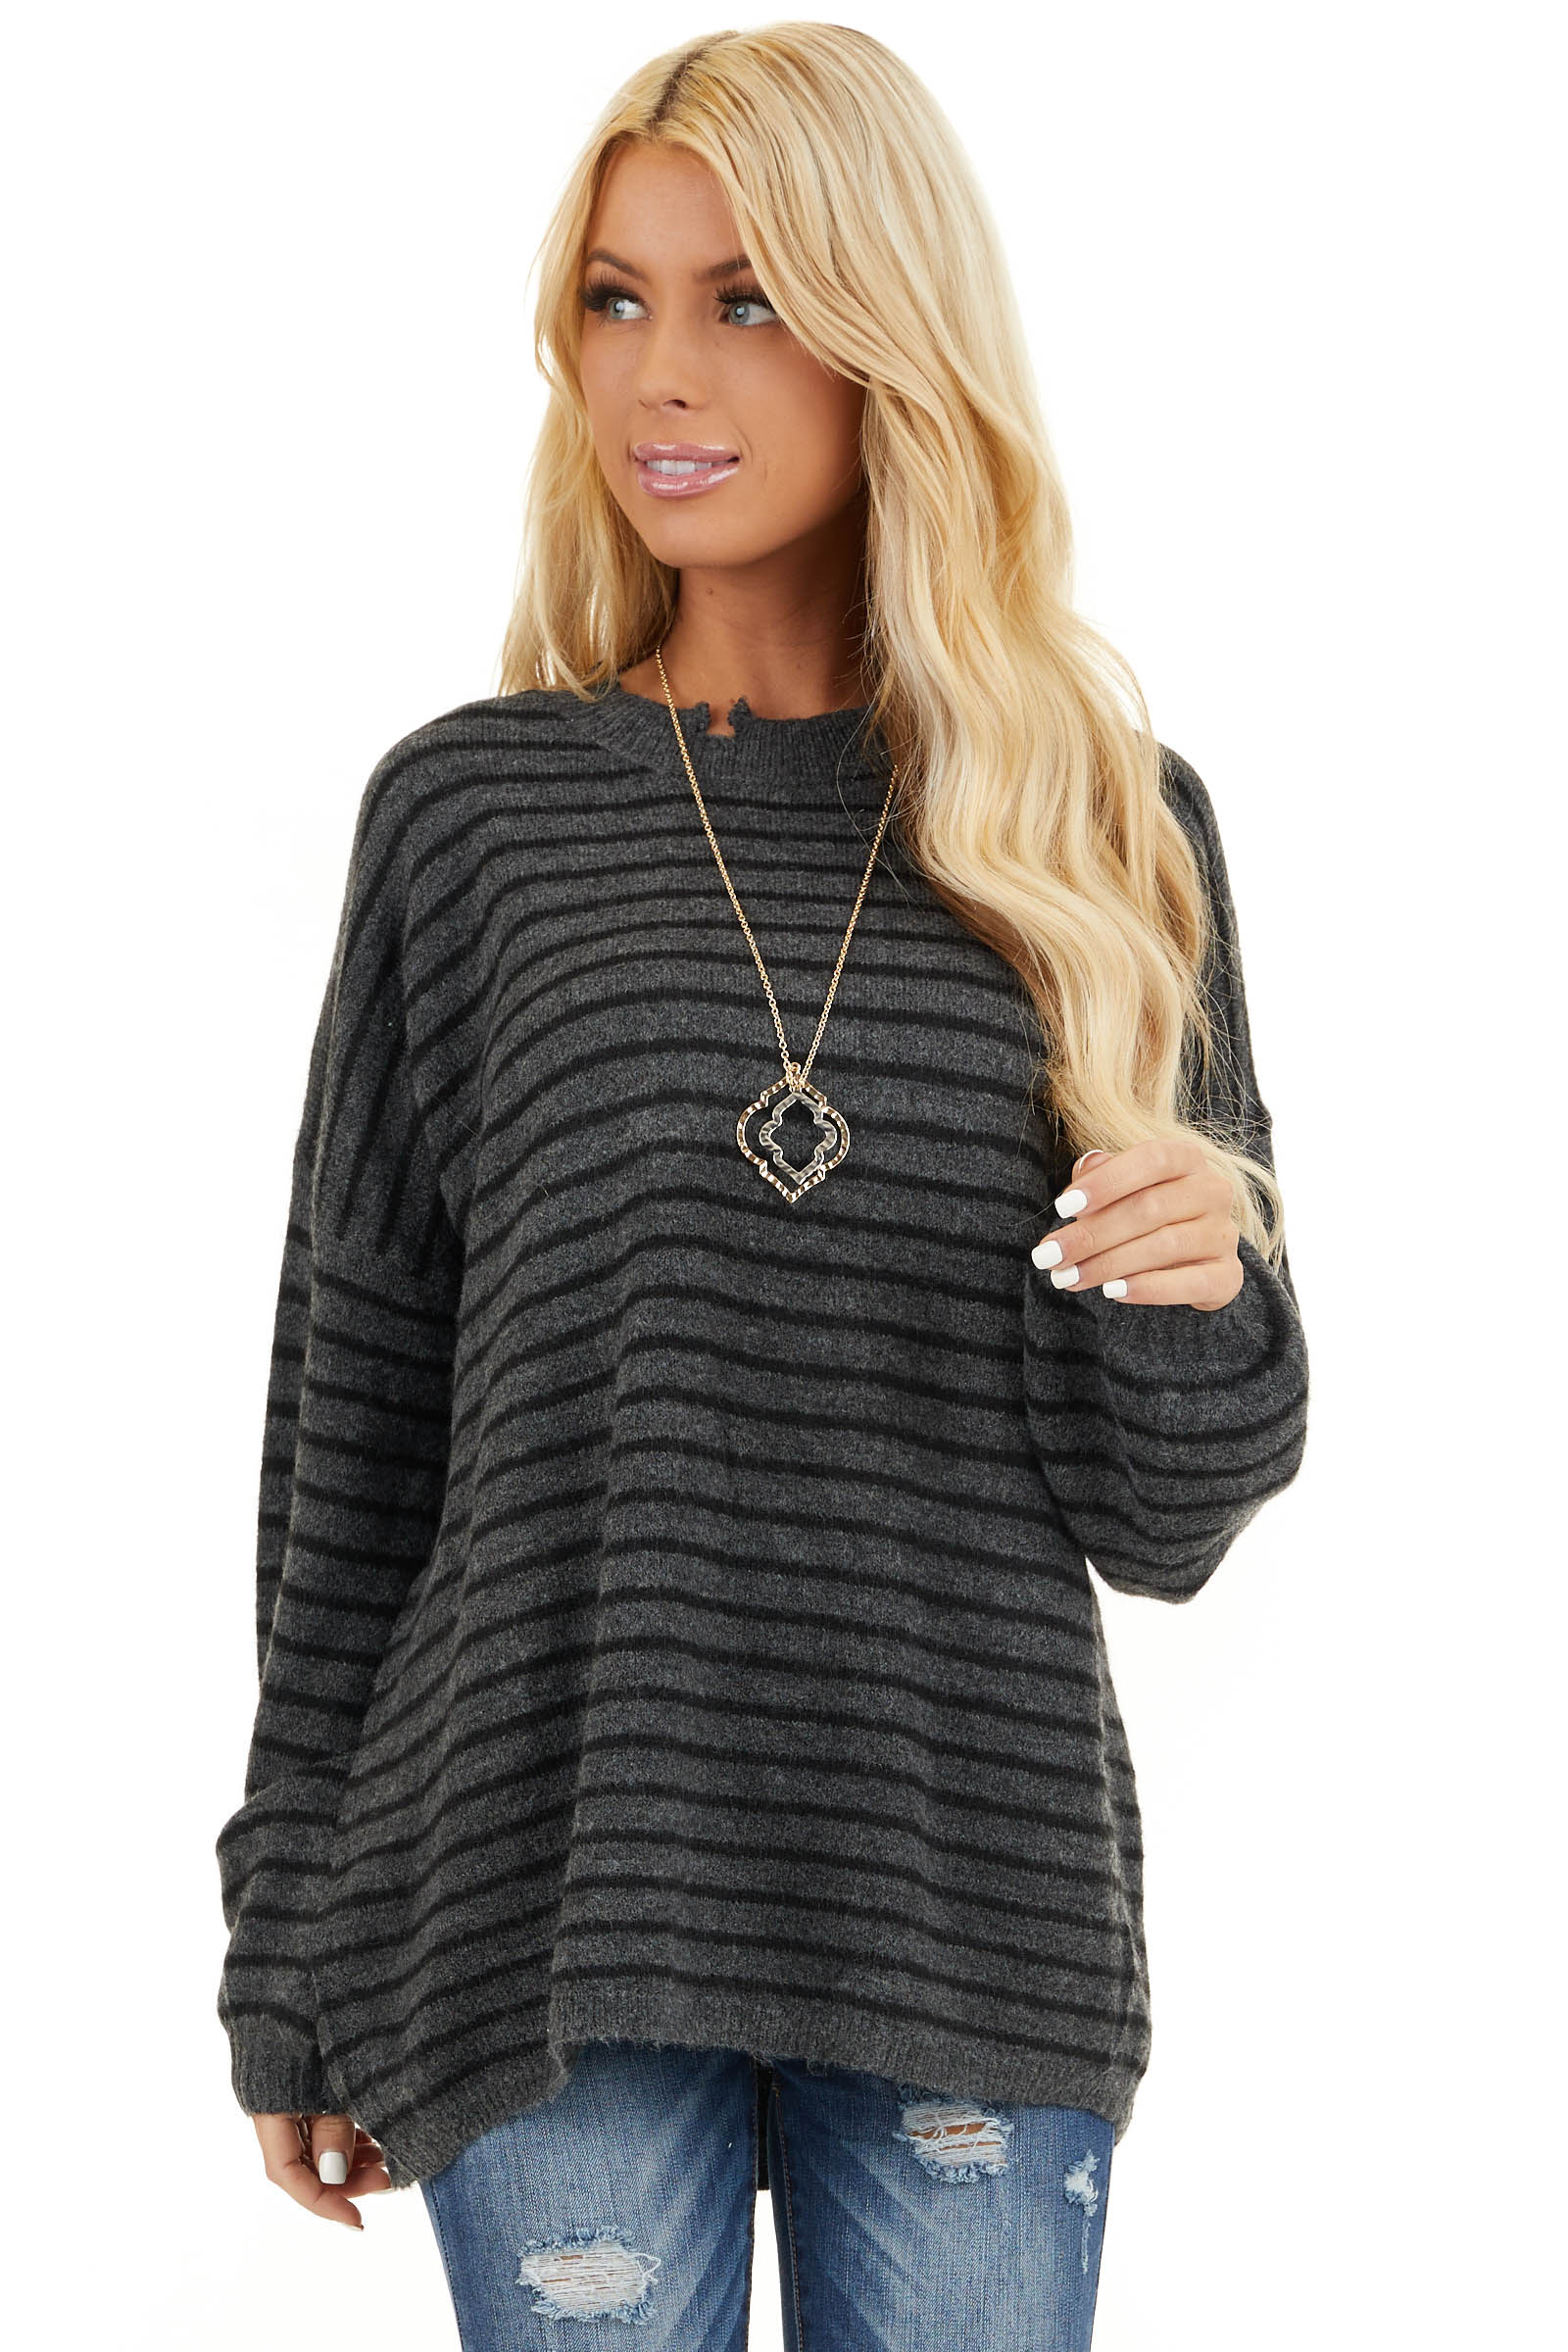 Black and Charcoal Striped Sweater with Distressed Neckline front close up